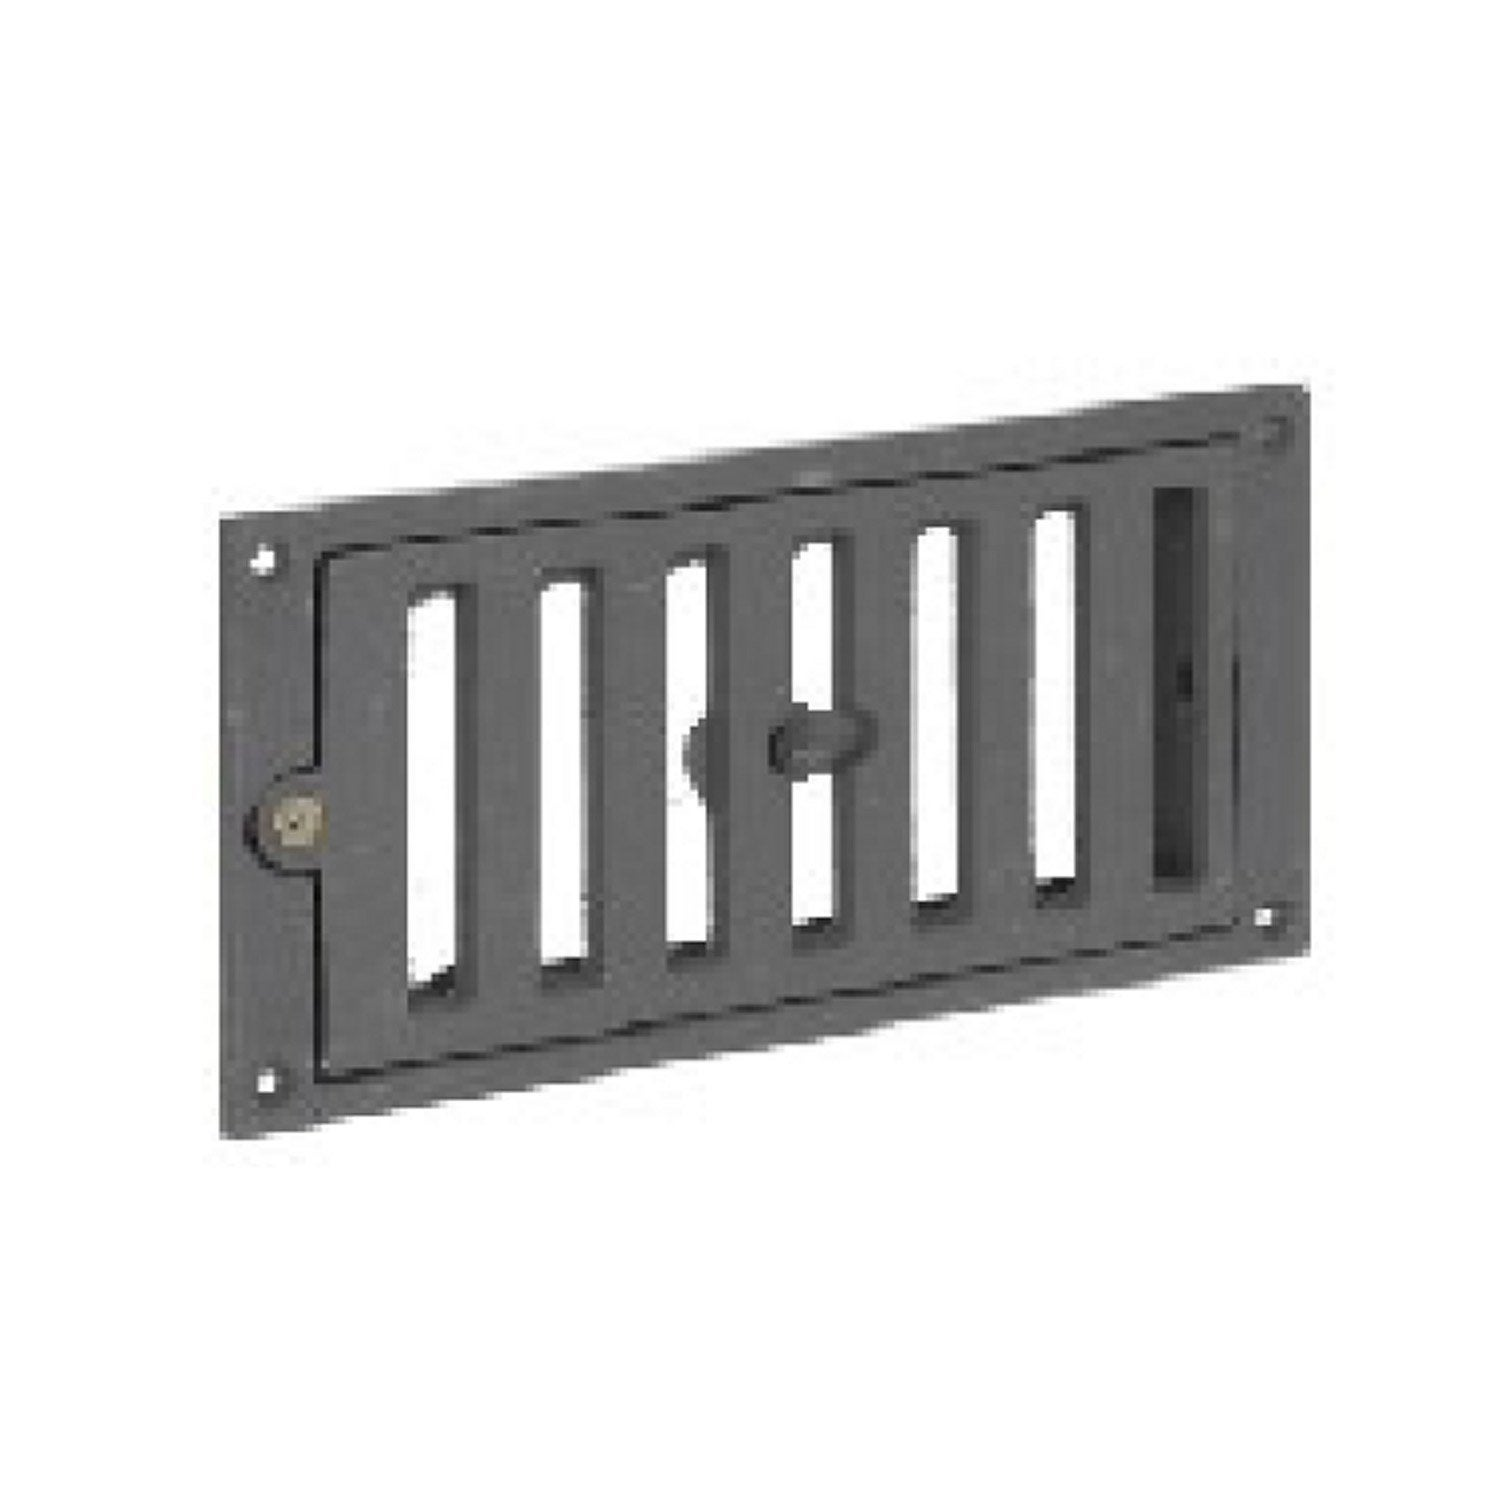 Grille d 39 air frais fonte gris fonte equation x - Grille de defense pour fenetre brico depot ...